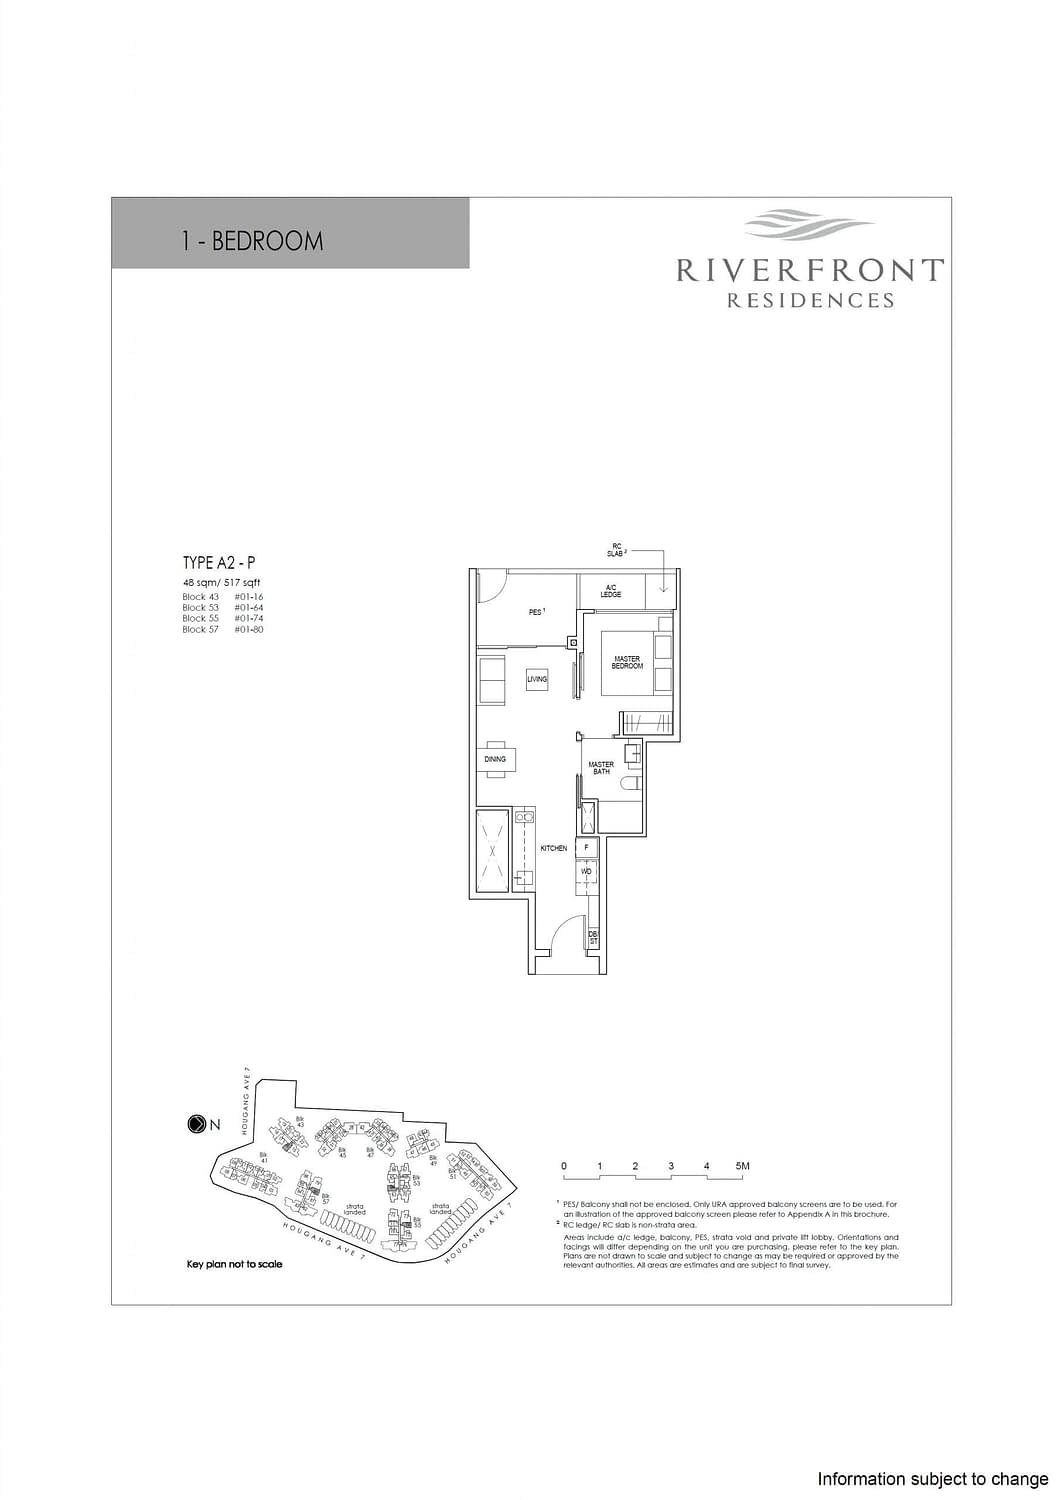 Riverfront Residences Riverfront Residences Floorplan A2 P scaled